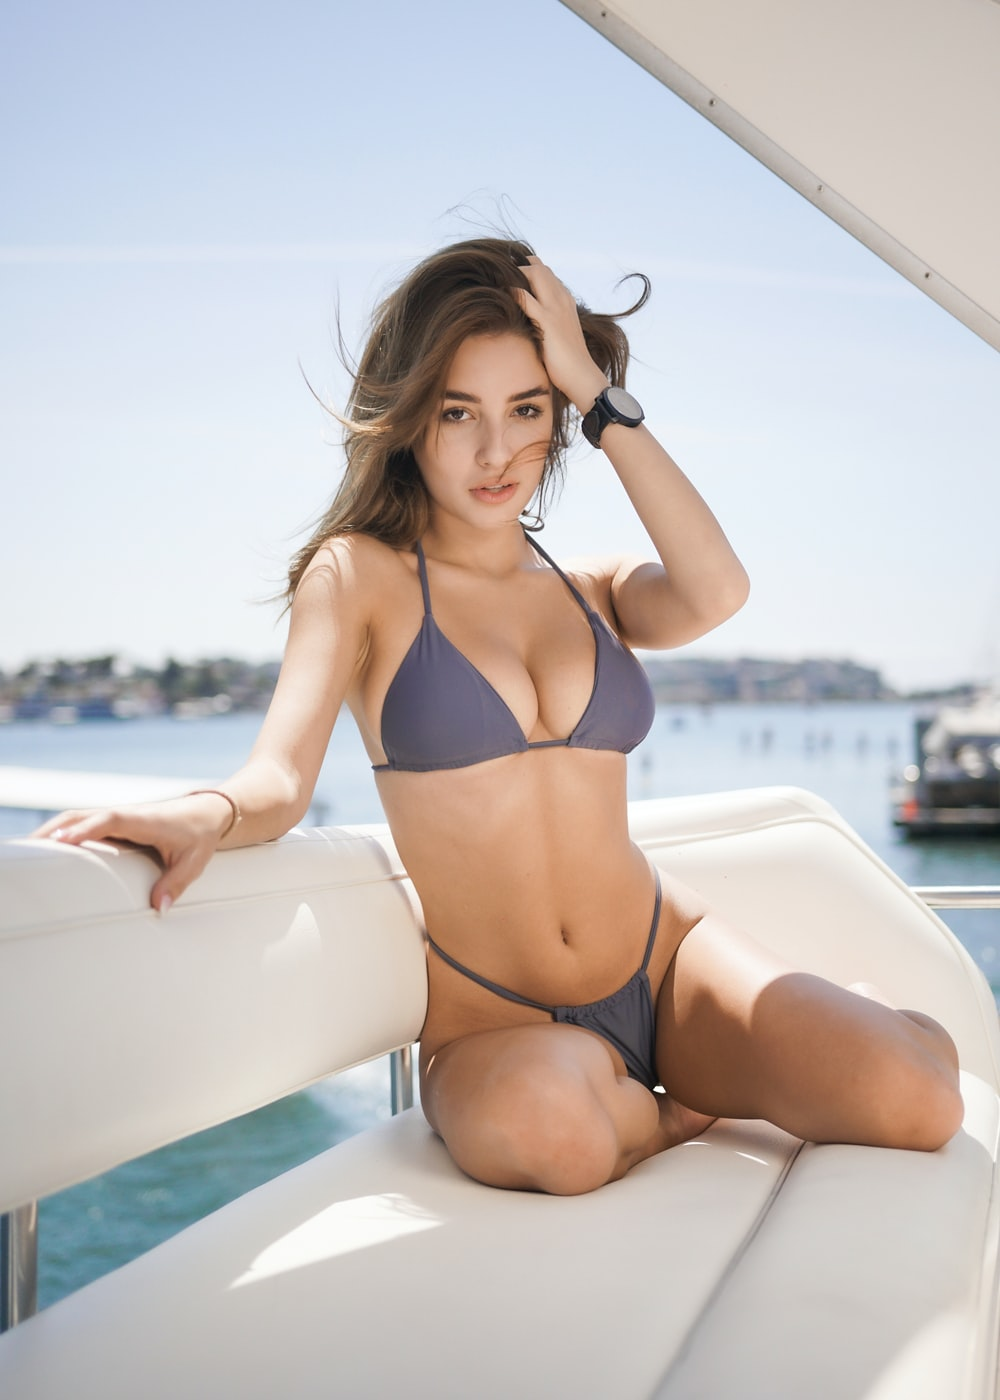 woman wears purple halter string bikini and sits on motorized boat